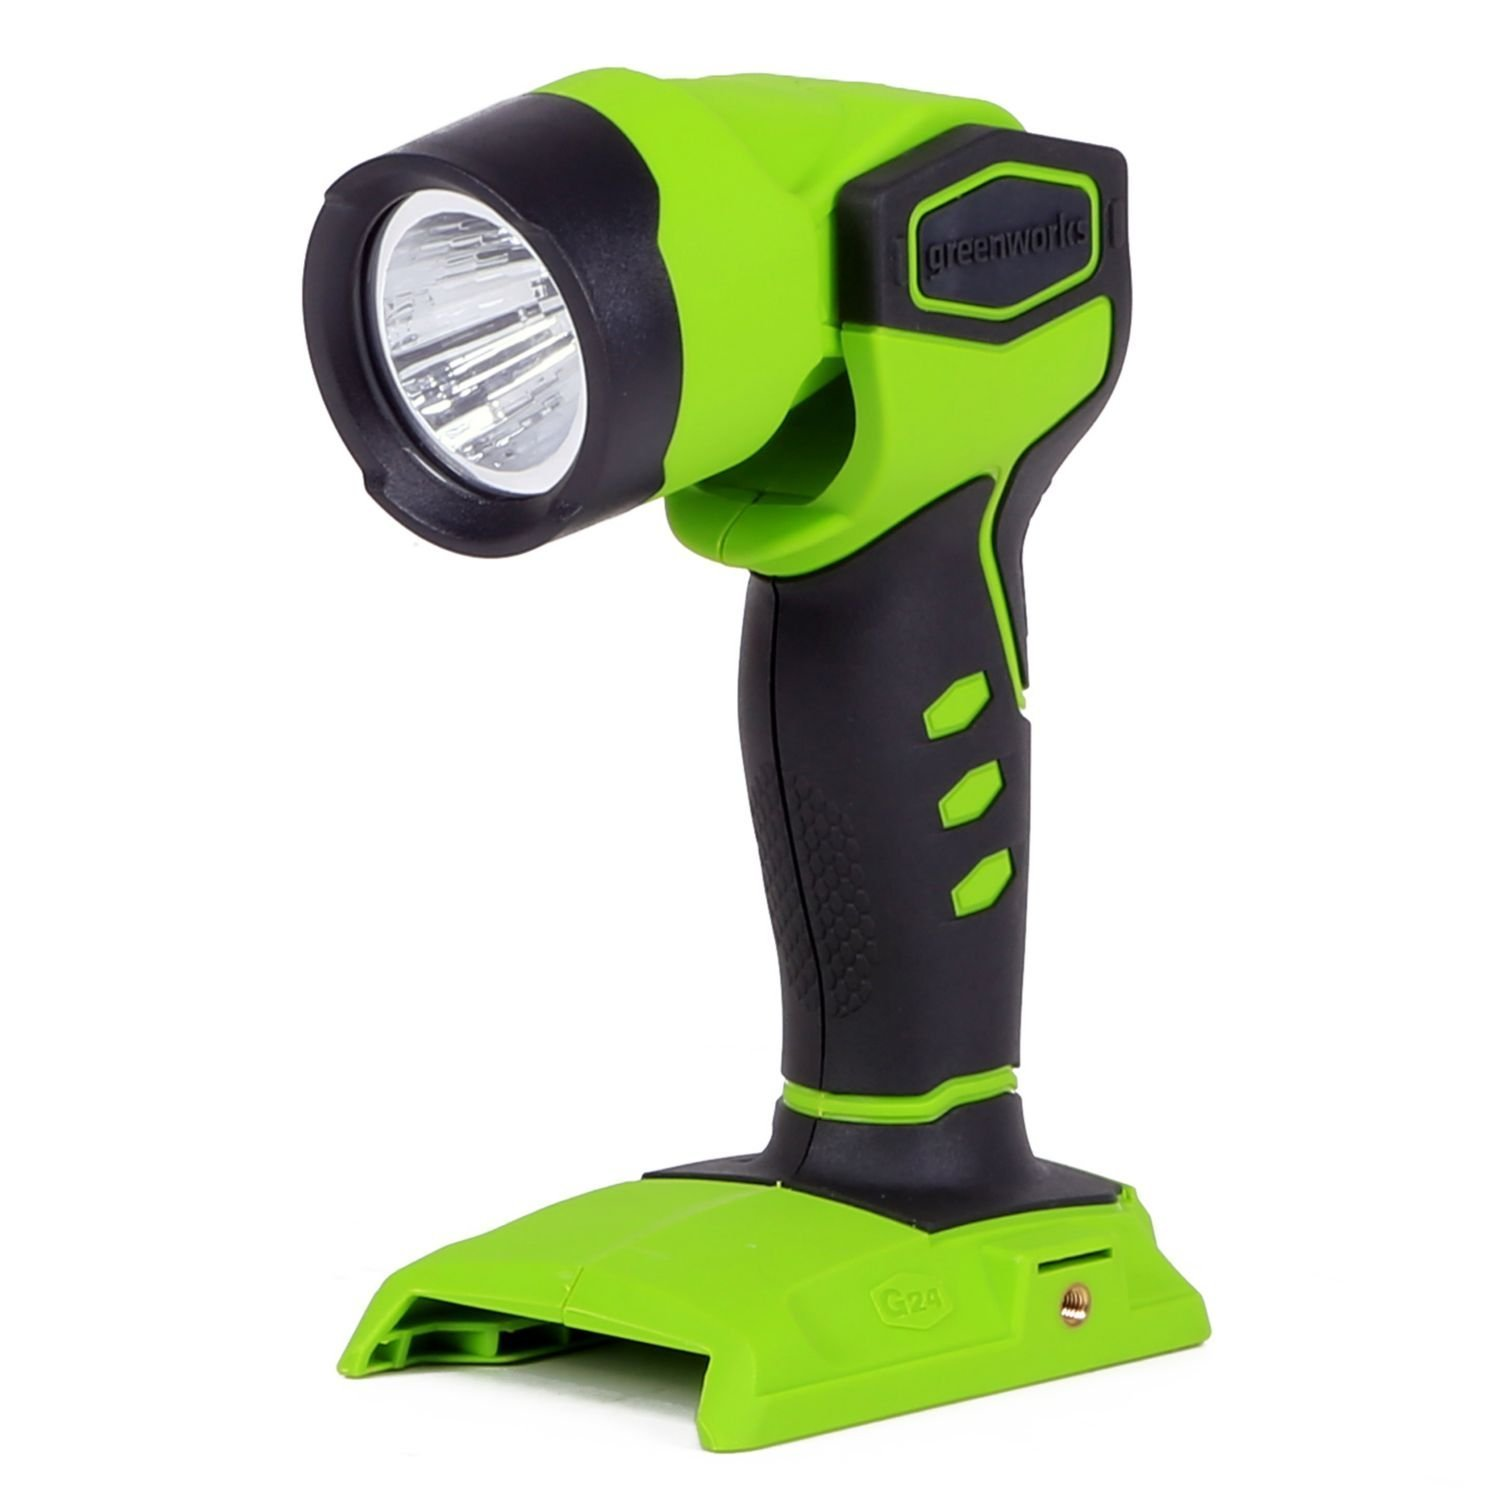 Greenworks 24V Cordless Work Light 35062A